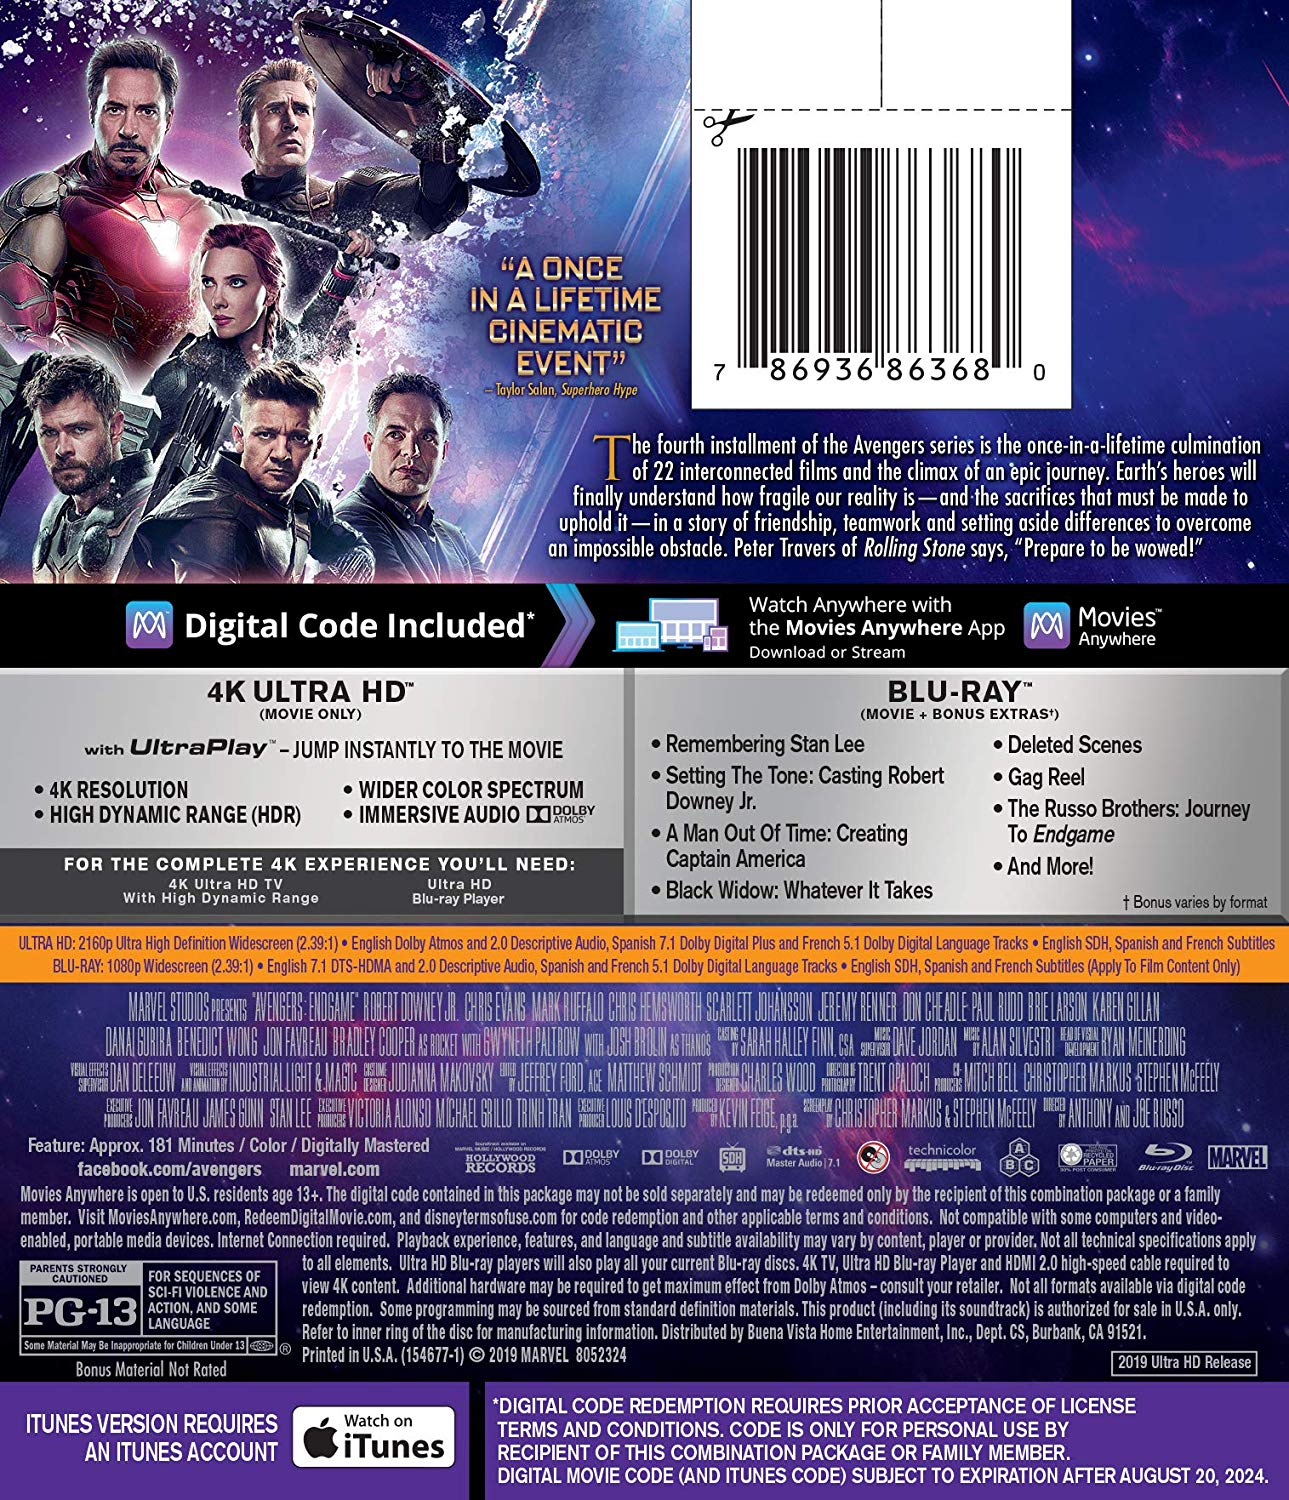 Avengers: Endgame Blu-Ray Announced, Deleted Scenes, More | Cosmic